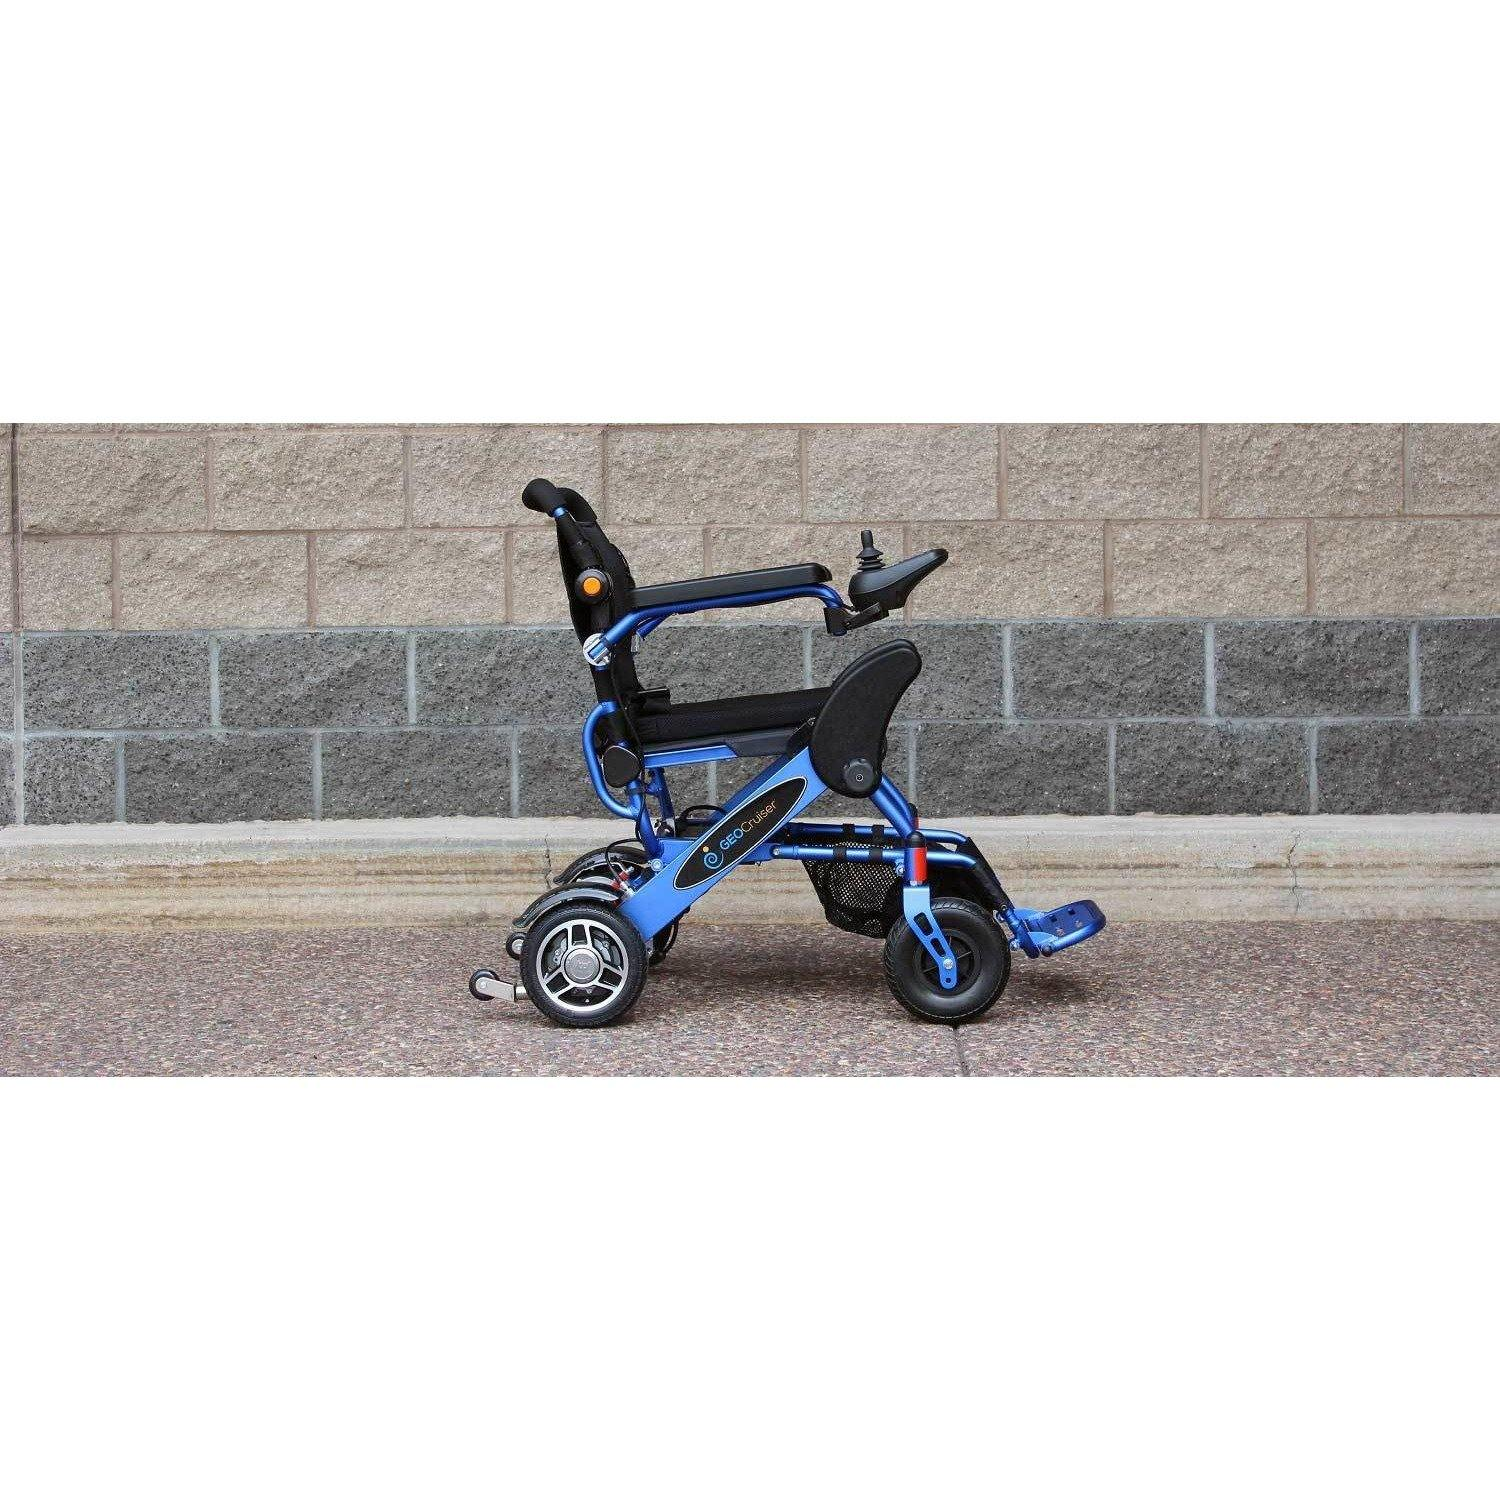 Geocruiser (Pathway Mobility): Geo Cruiser DX Lightweight Foldable Power Chair (Blue) - GC-216B-01 - Actual Side View